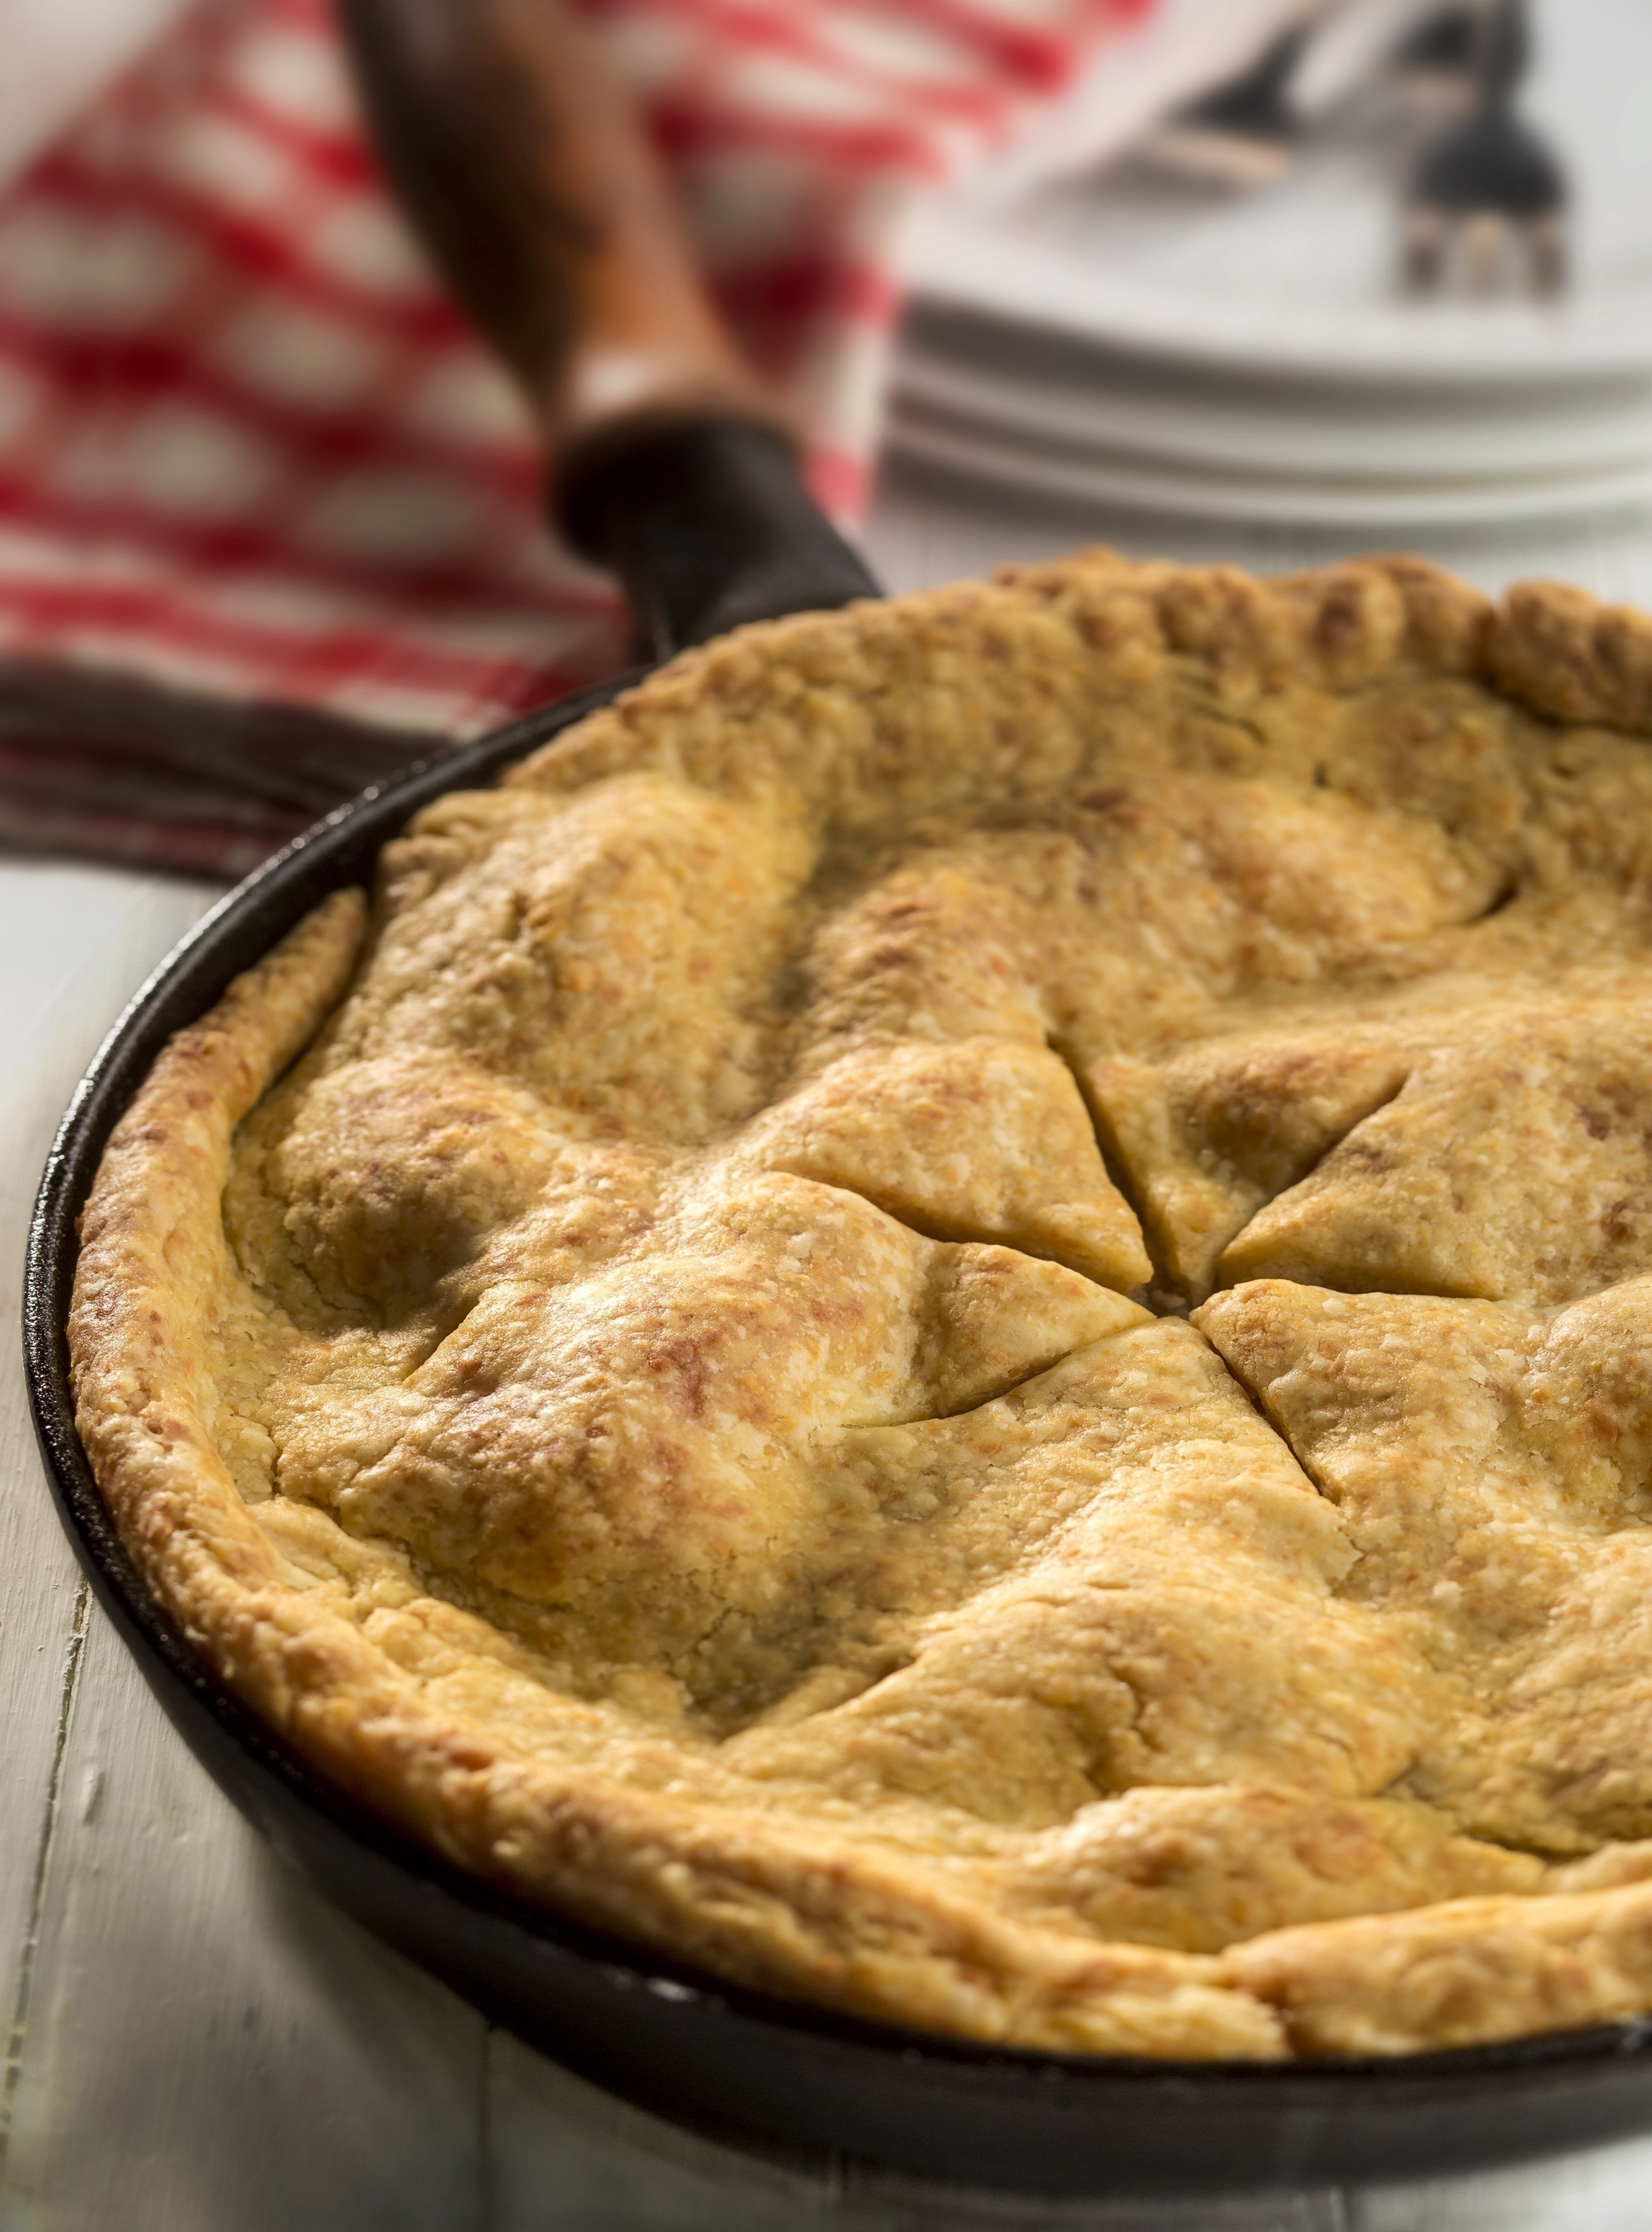 A summer camp breakfast: Apple pie with cheddar cheese.